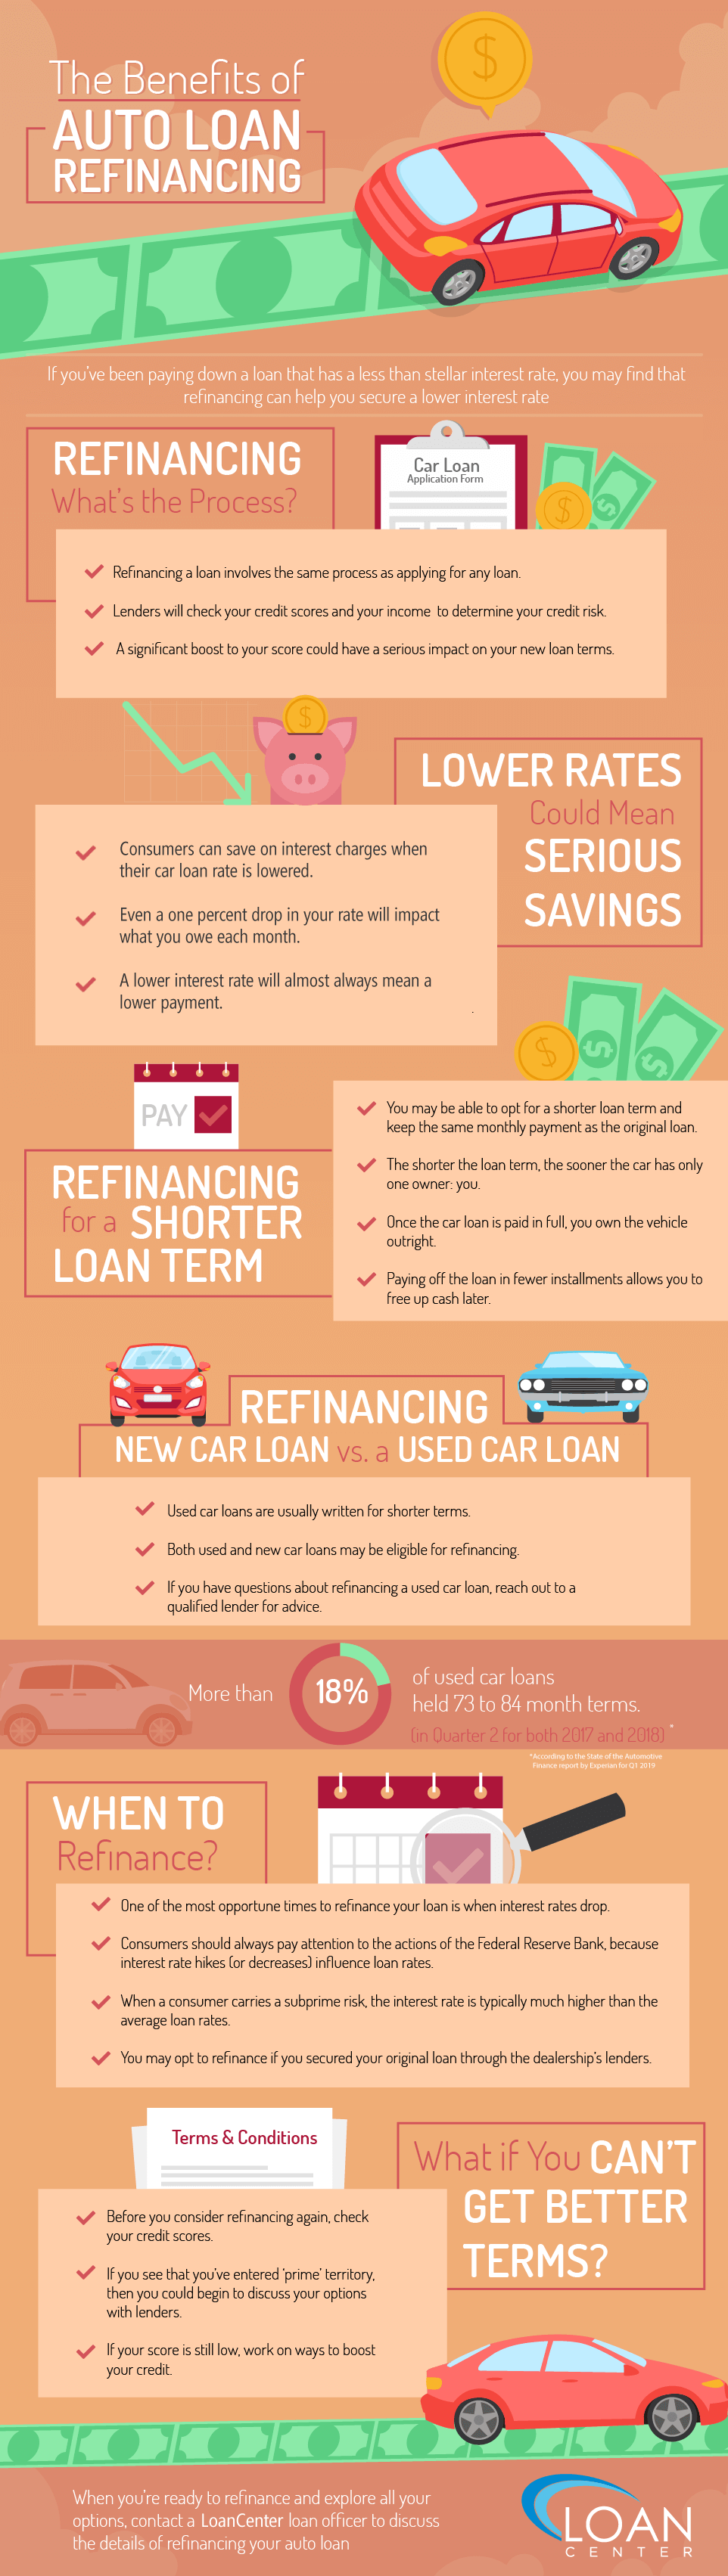 Infographic showing the benefits of getting an auto loan refinance